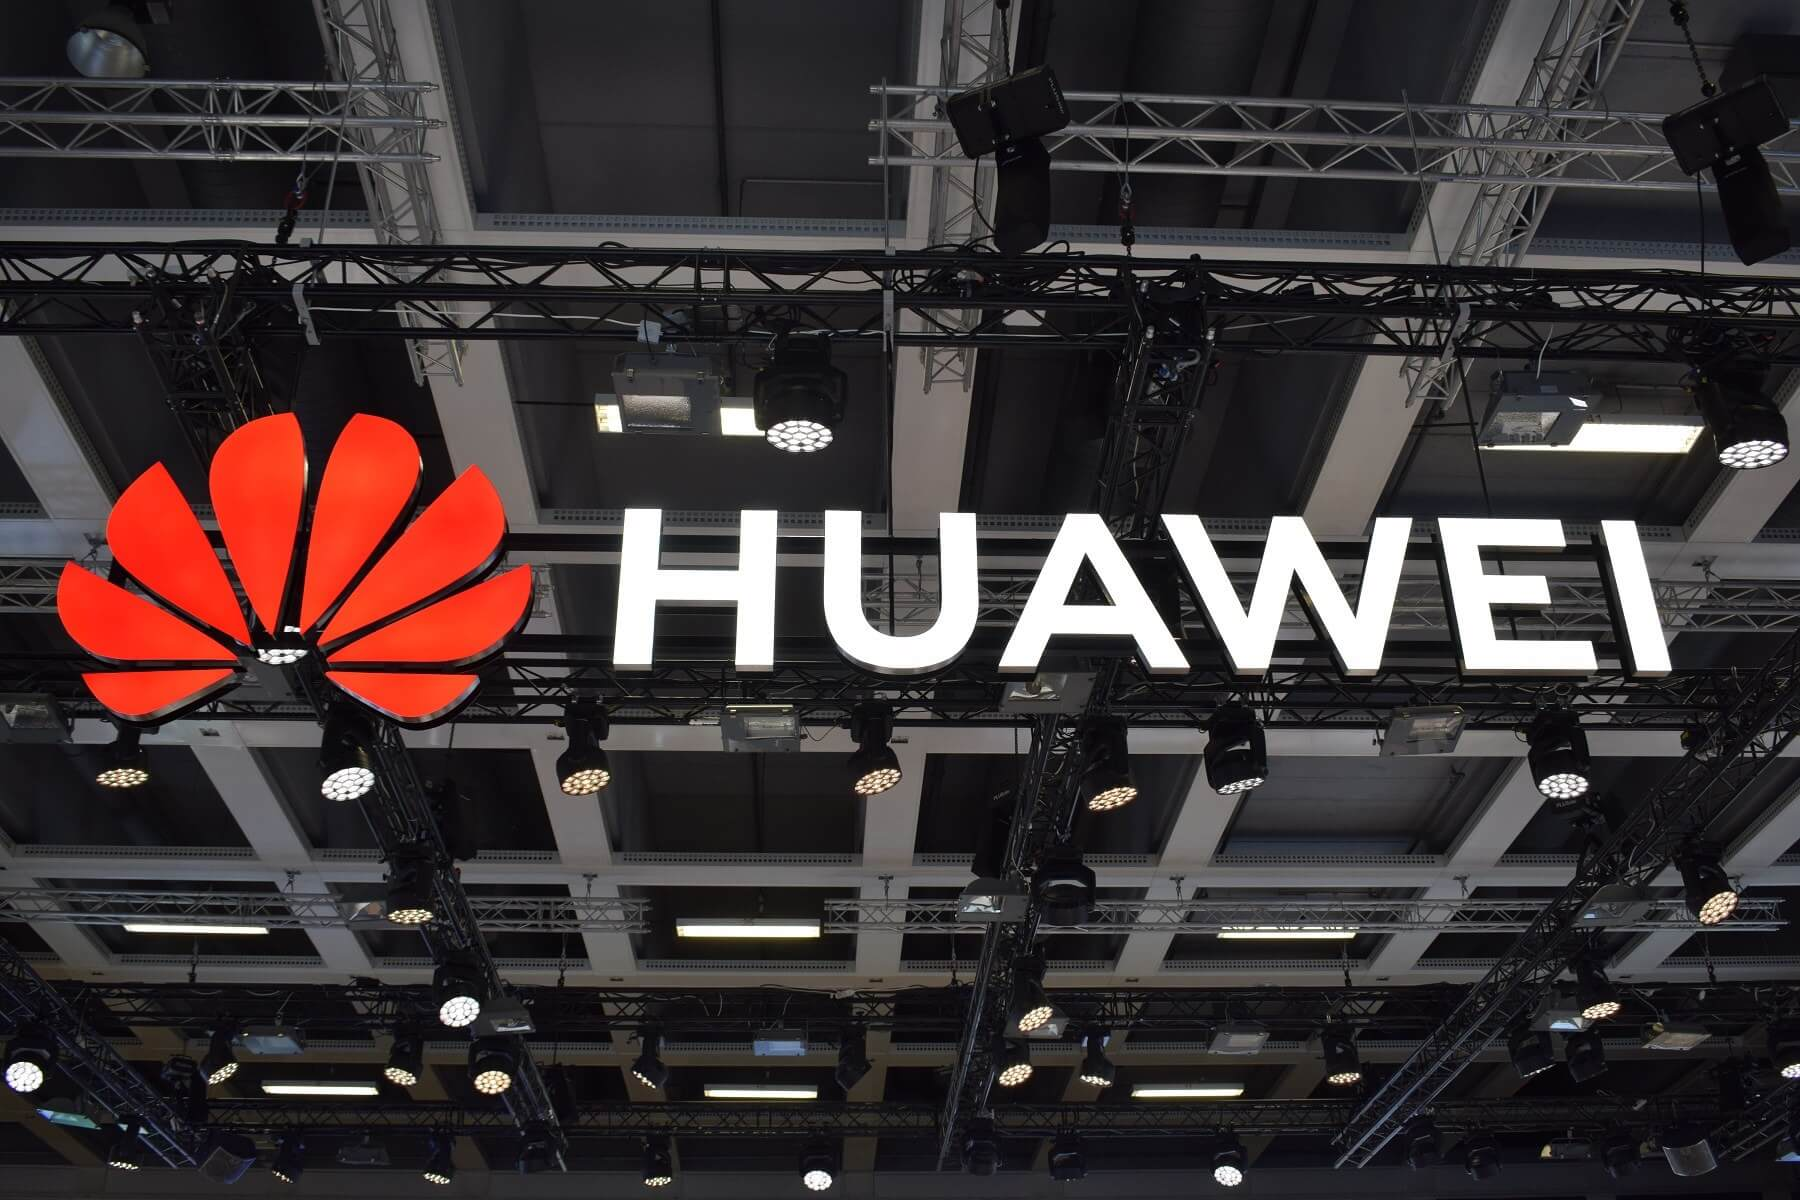 Two Huawei Employees Punished for Posting Company Tweet From iPhone